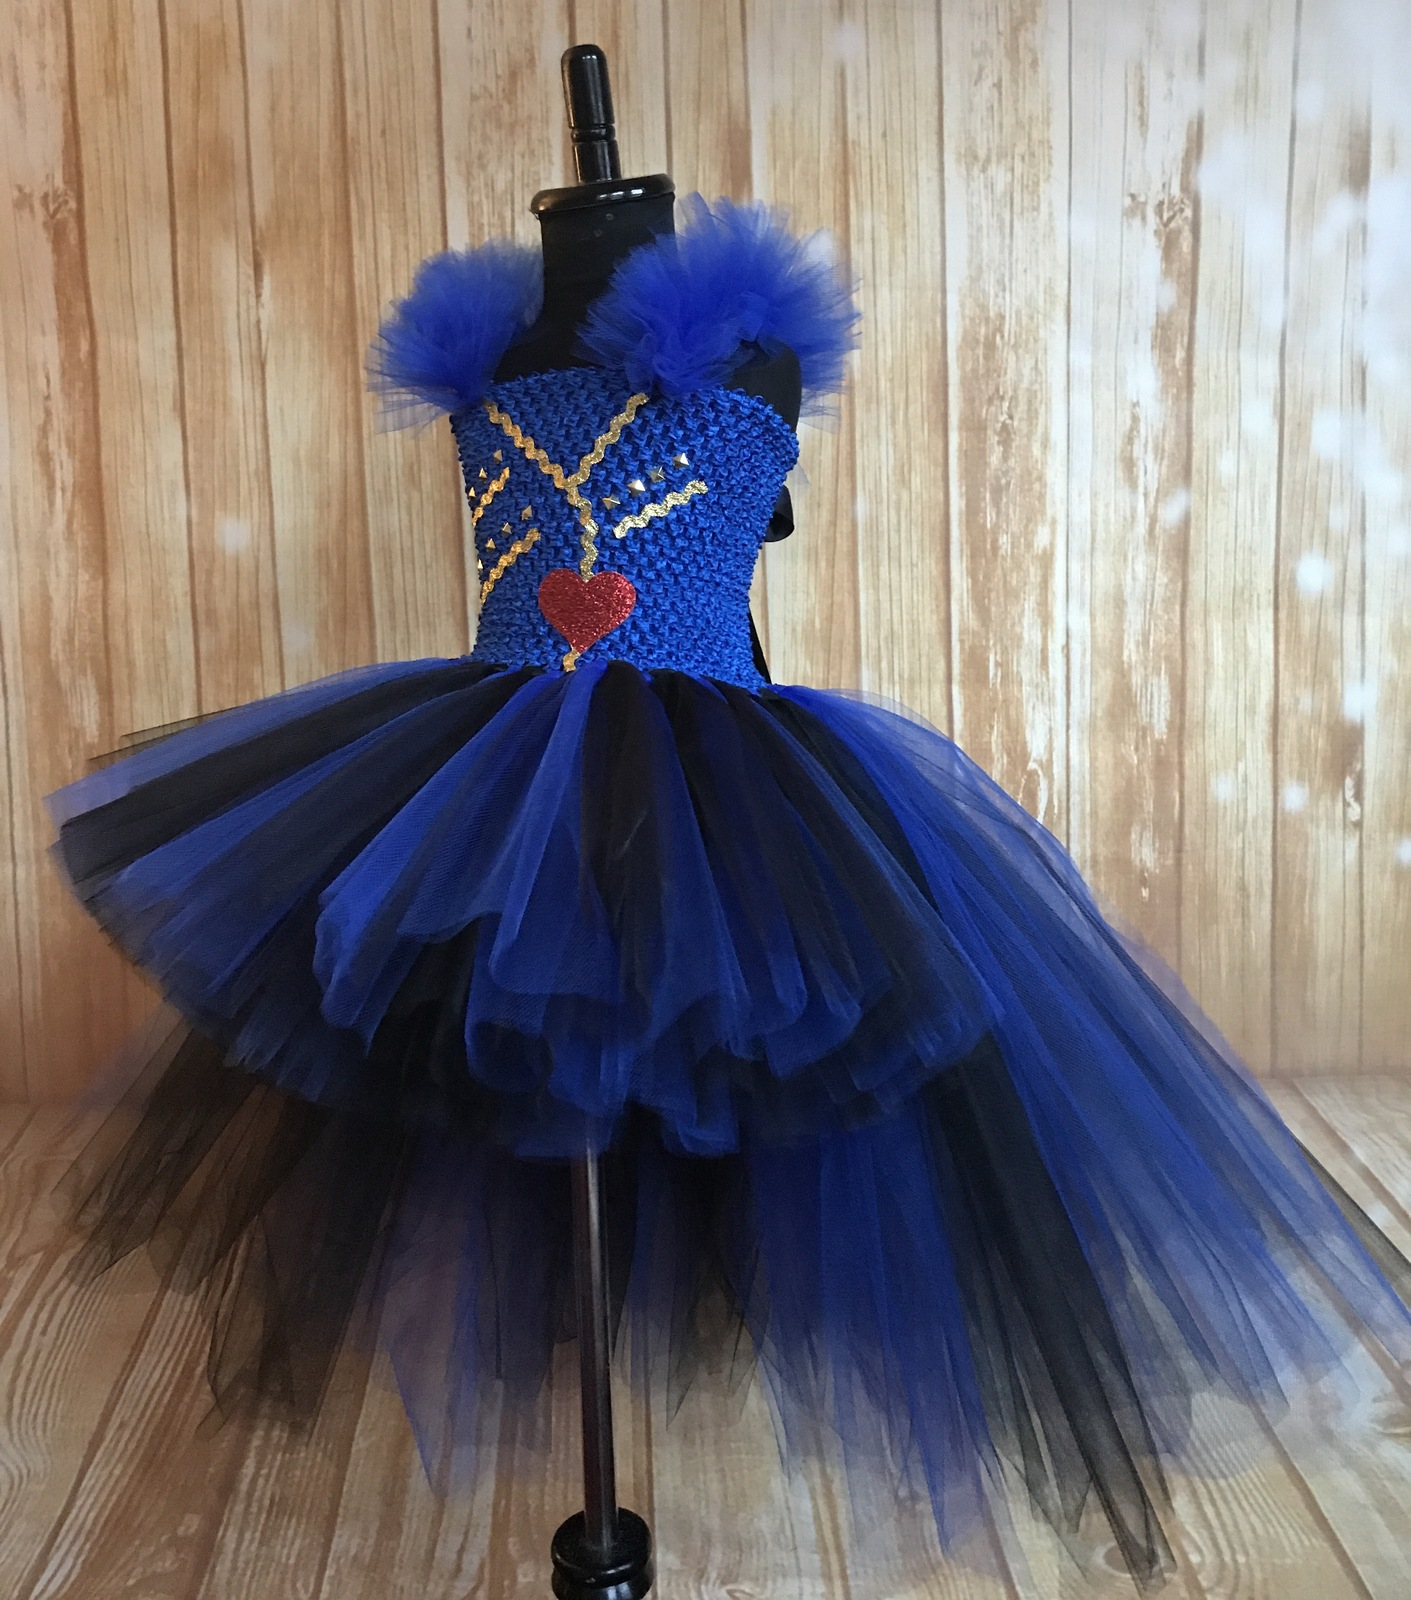 Evie Descendants High Low Tutu Dress, and 50 similar items